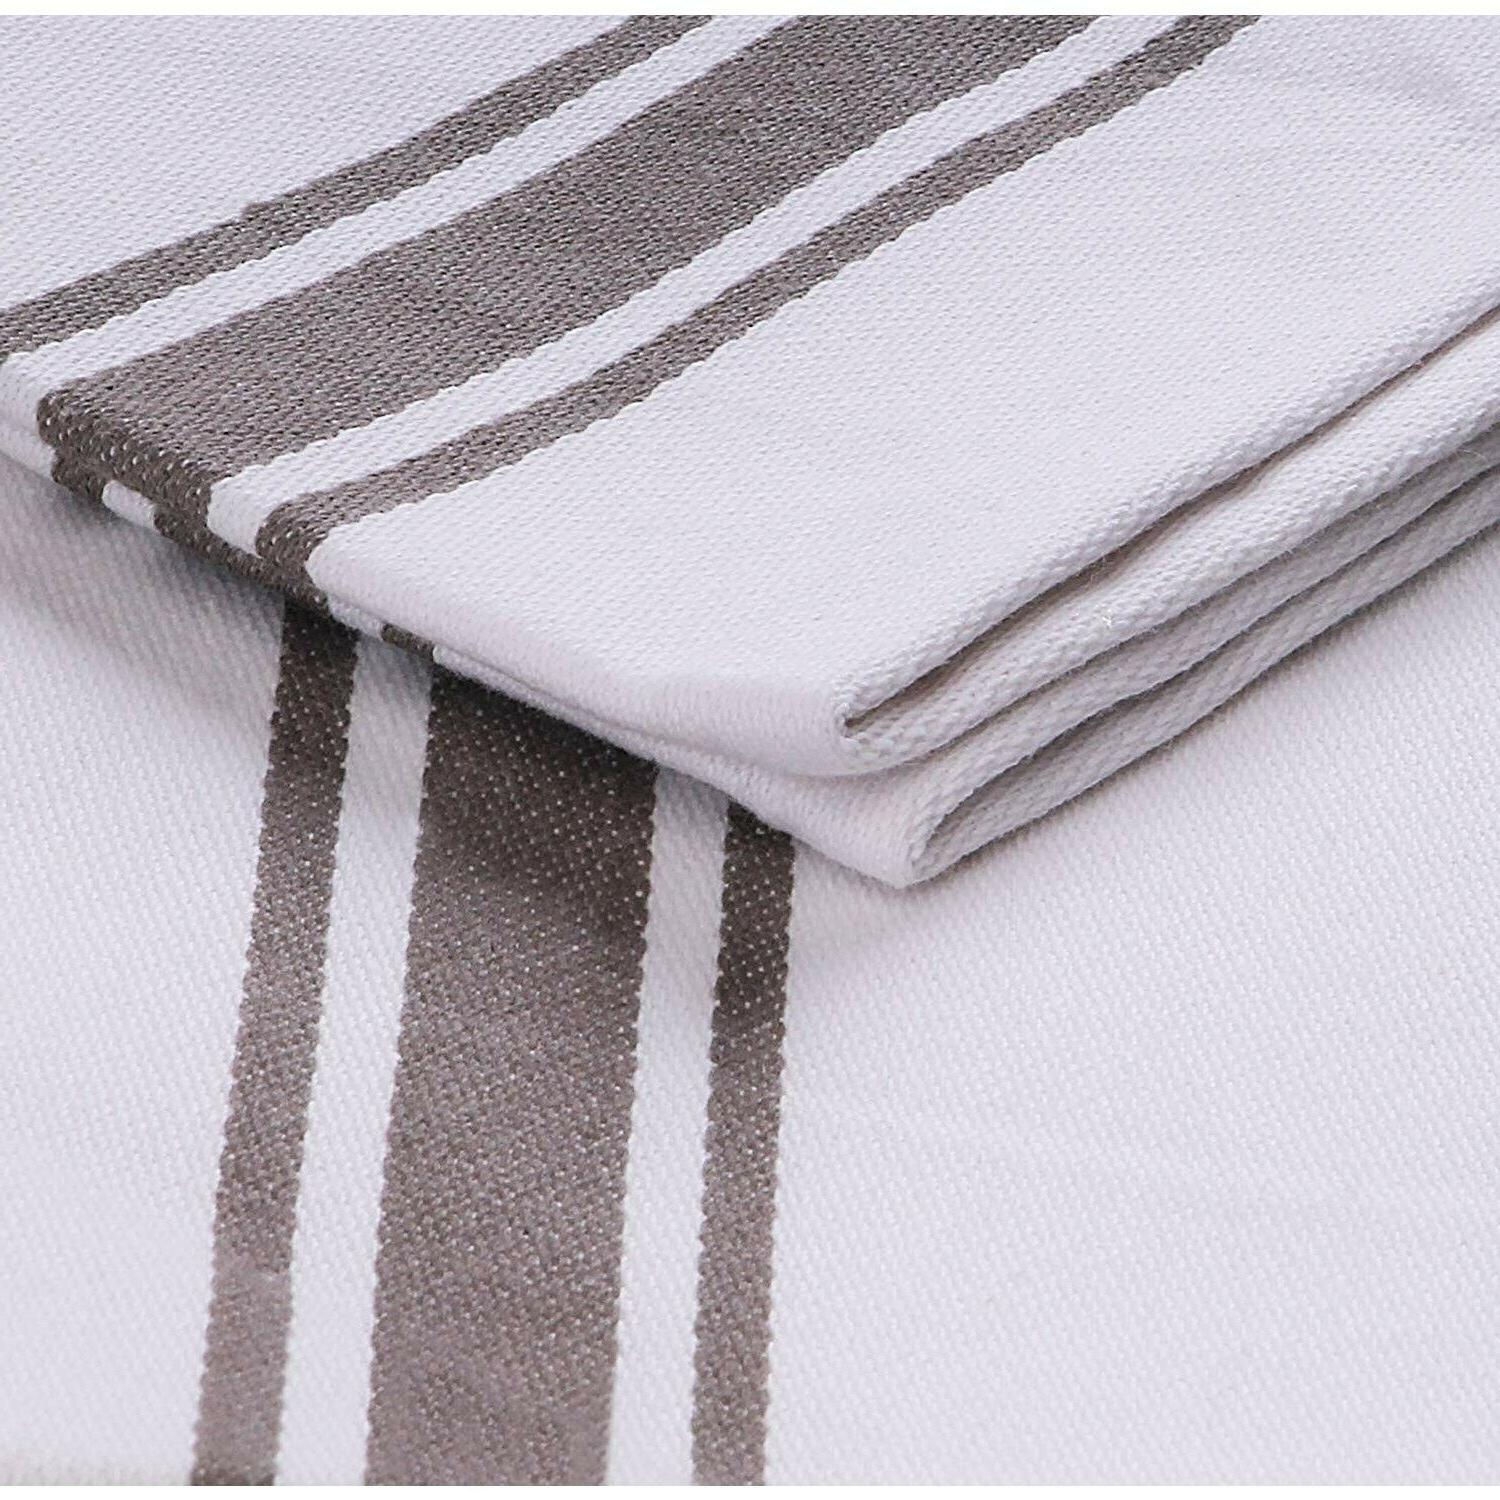 Cotton Kitchen Absorbent Natural Classic Solid NEW